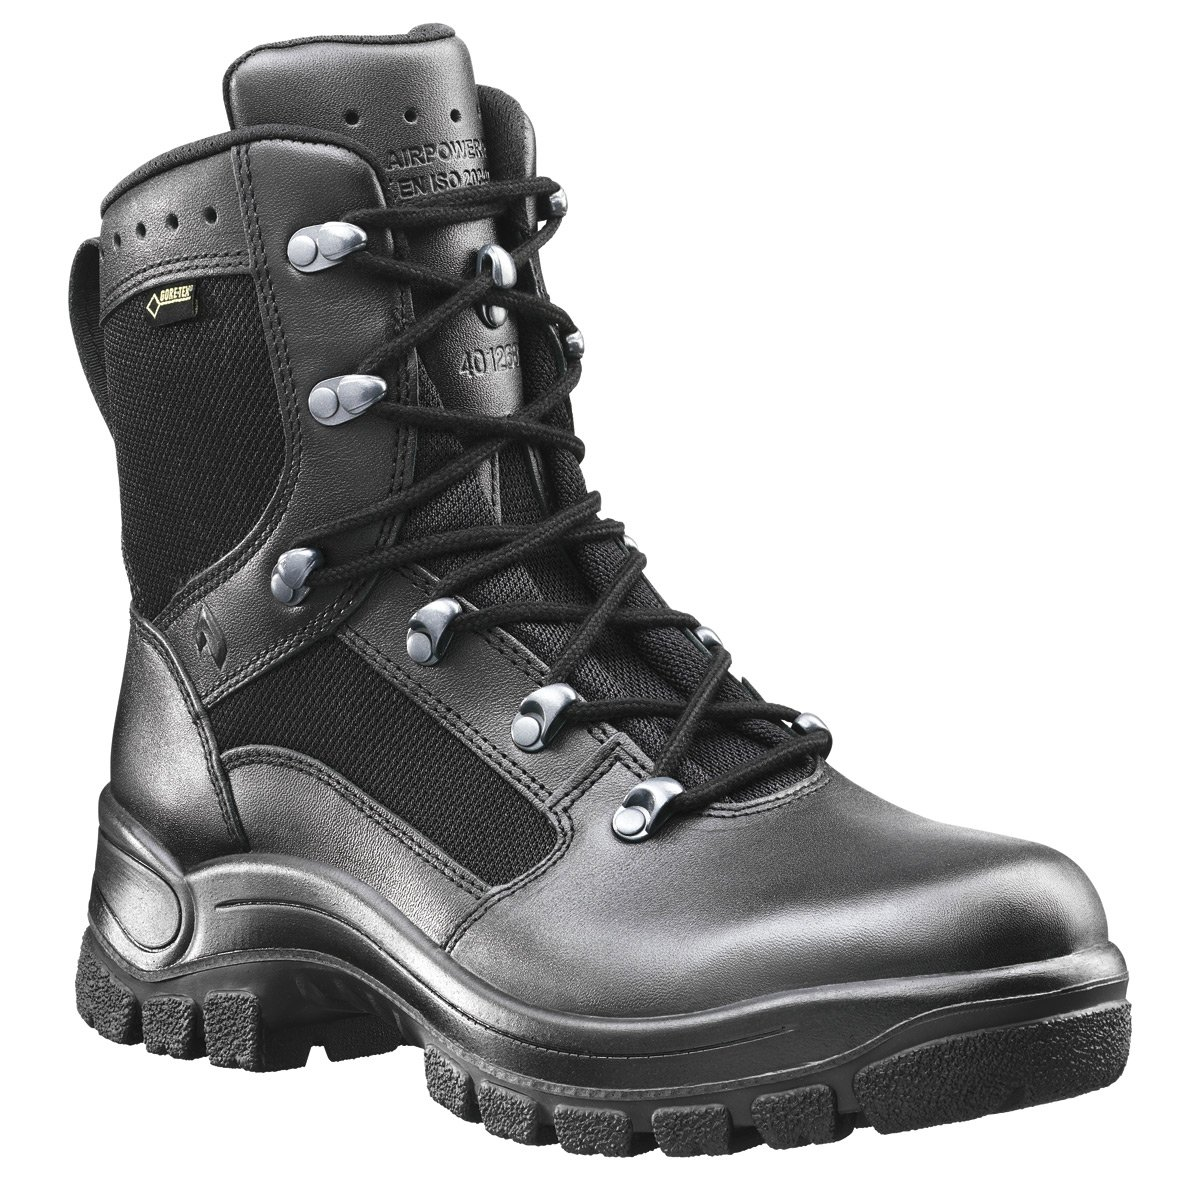 Original HAIX ® Gr. Airpower P6 High EINSATZSTIEFEL Gr. ® 37-47 - bb181a